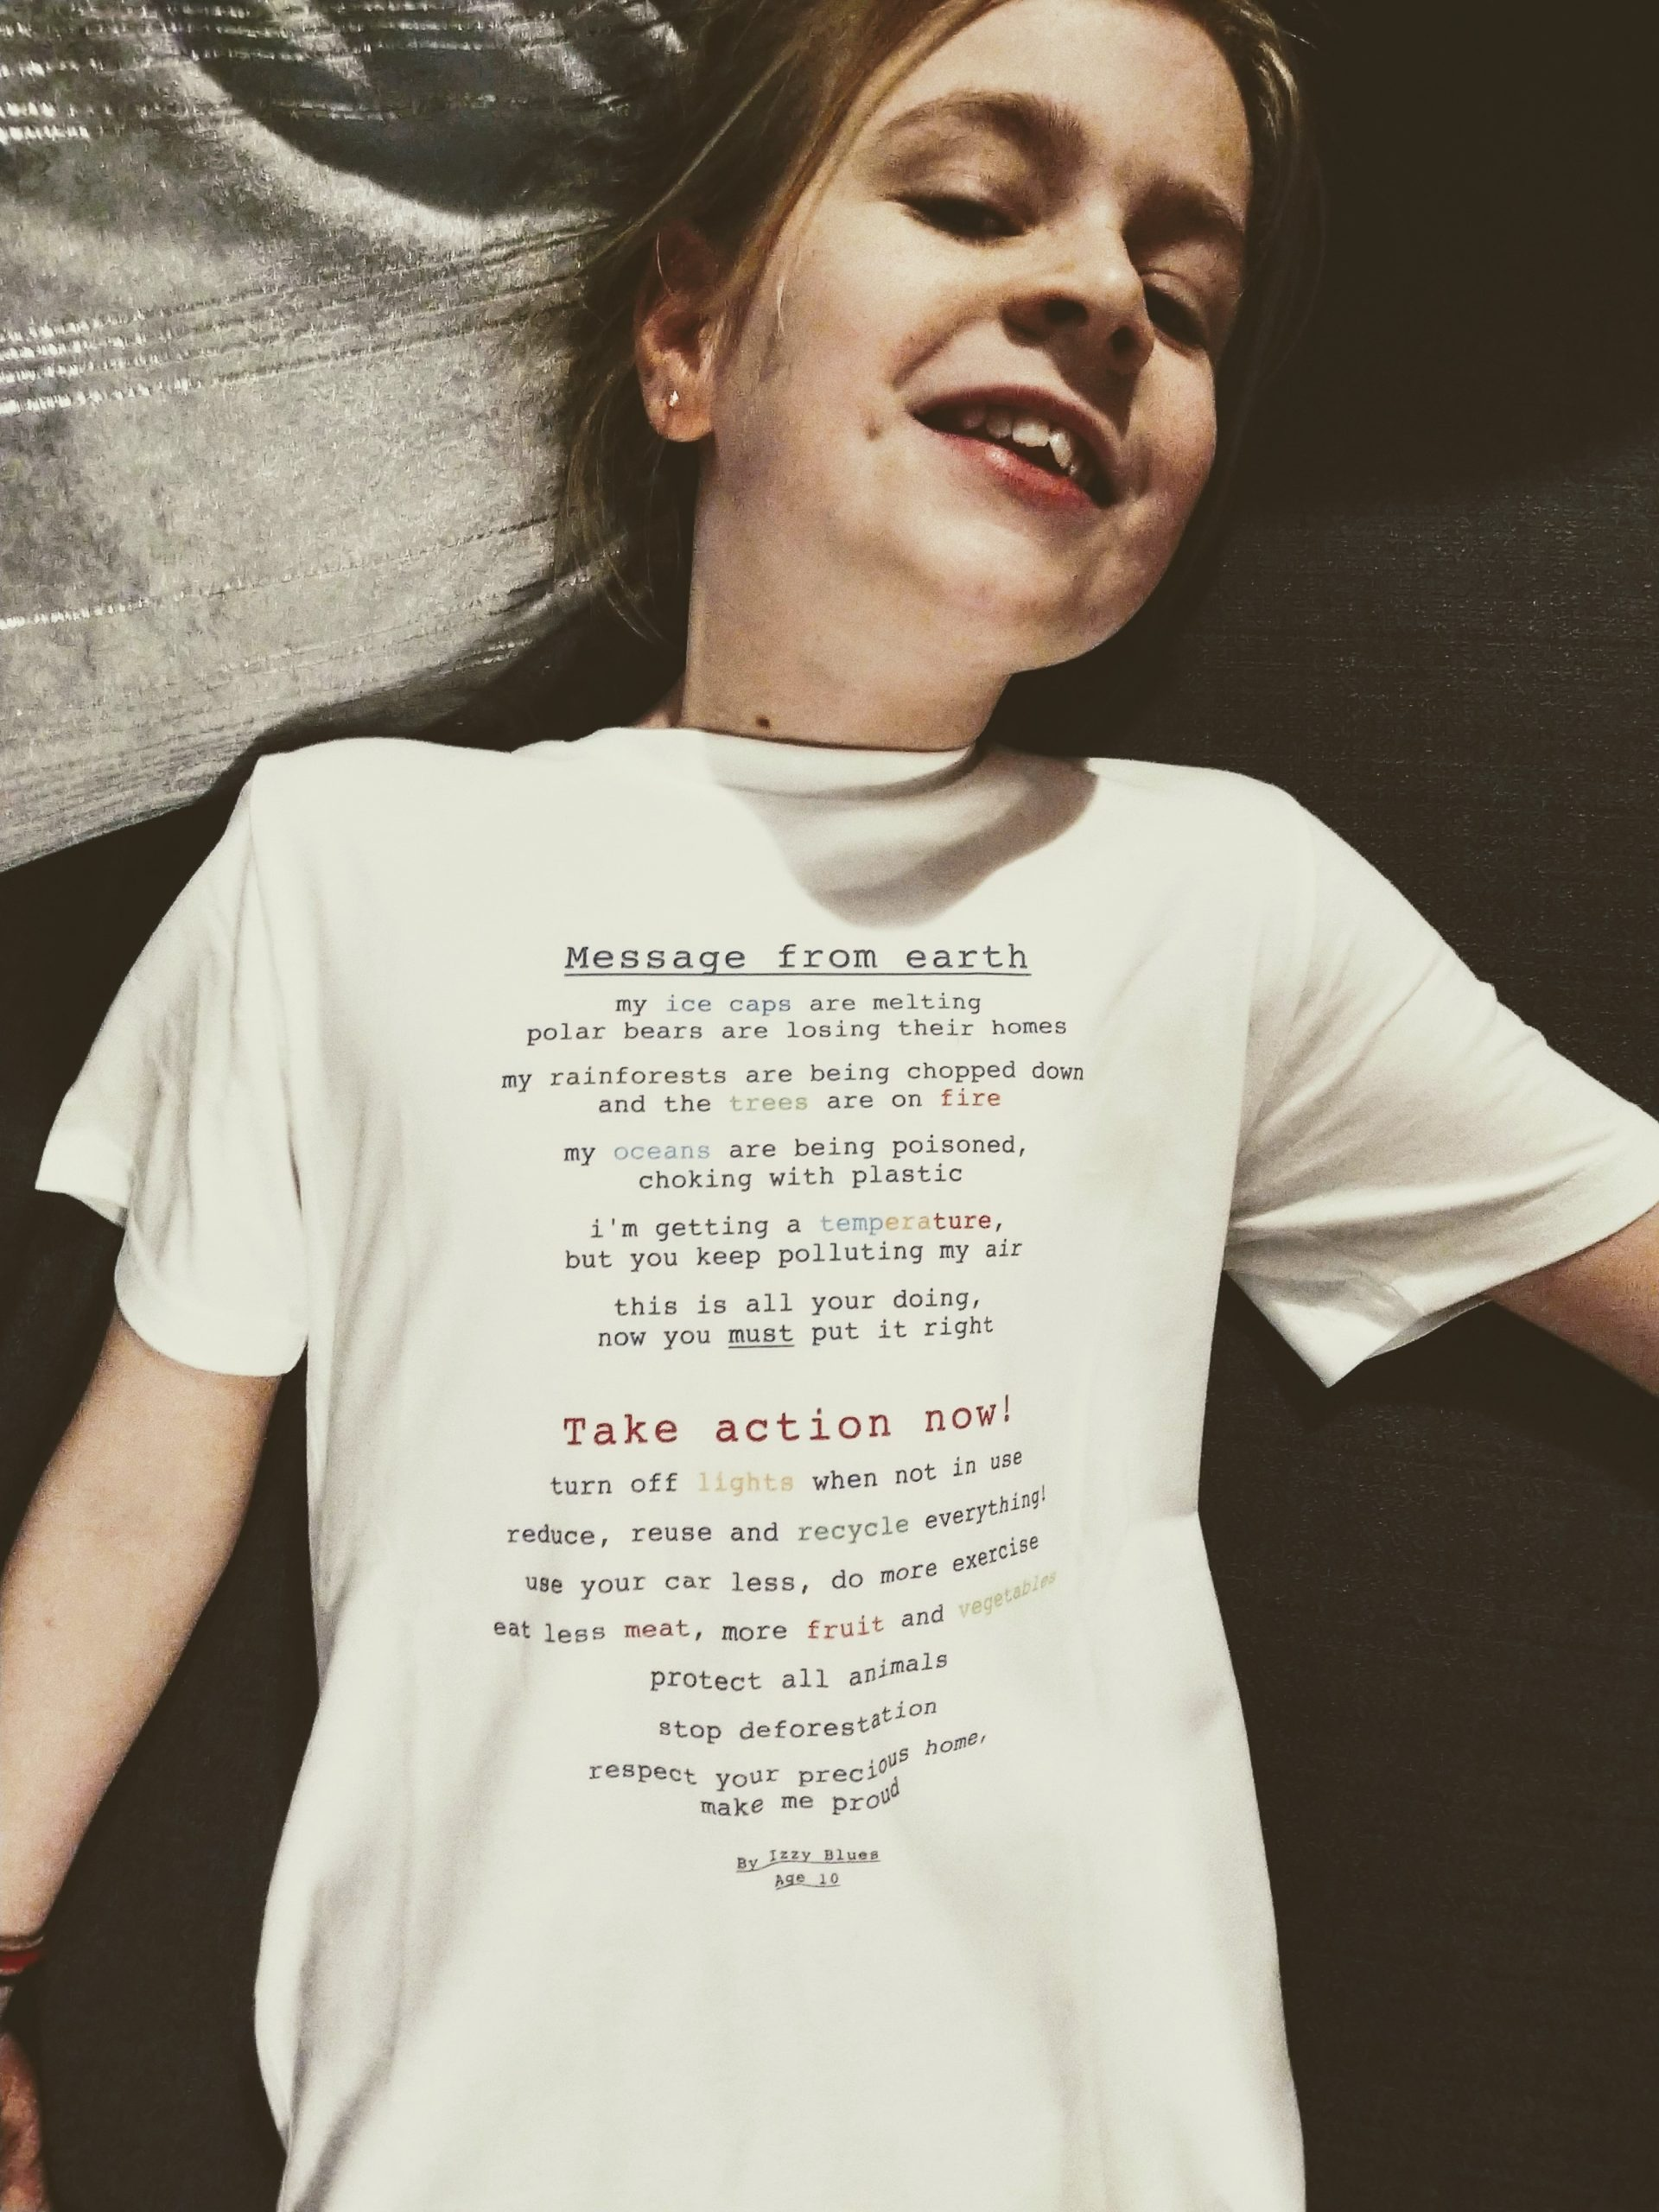 "Commonwealth Day Service Competition 2020, ""Message from earth"" Poem on a T-shirt by Izzy Blues"